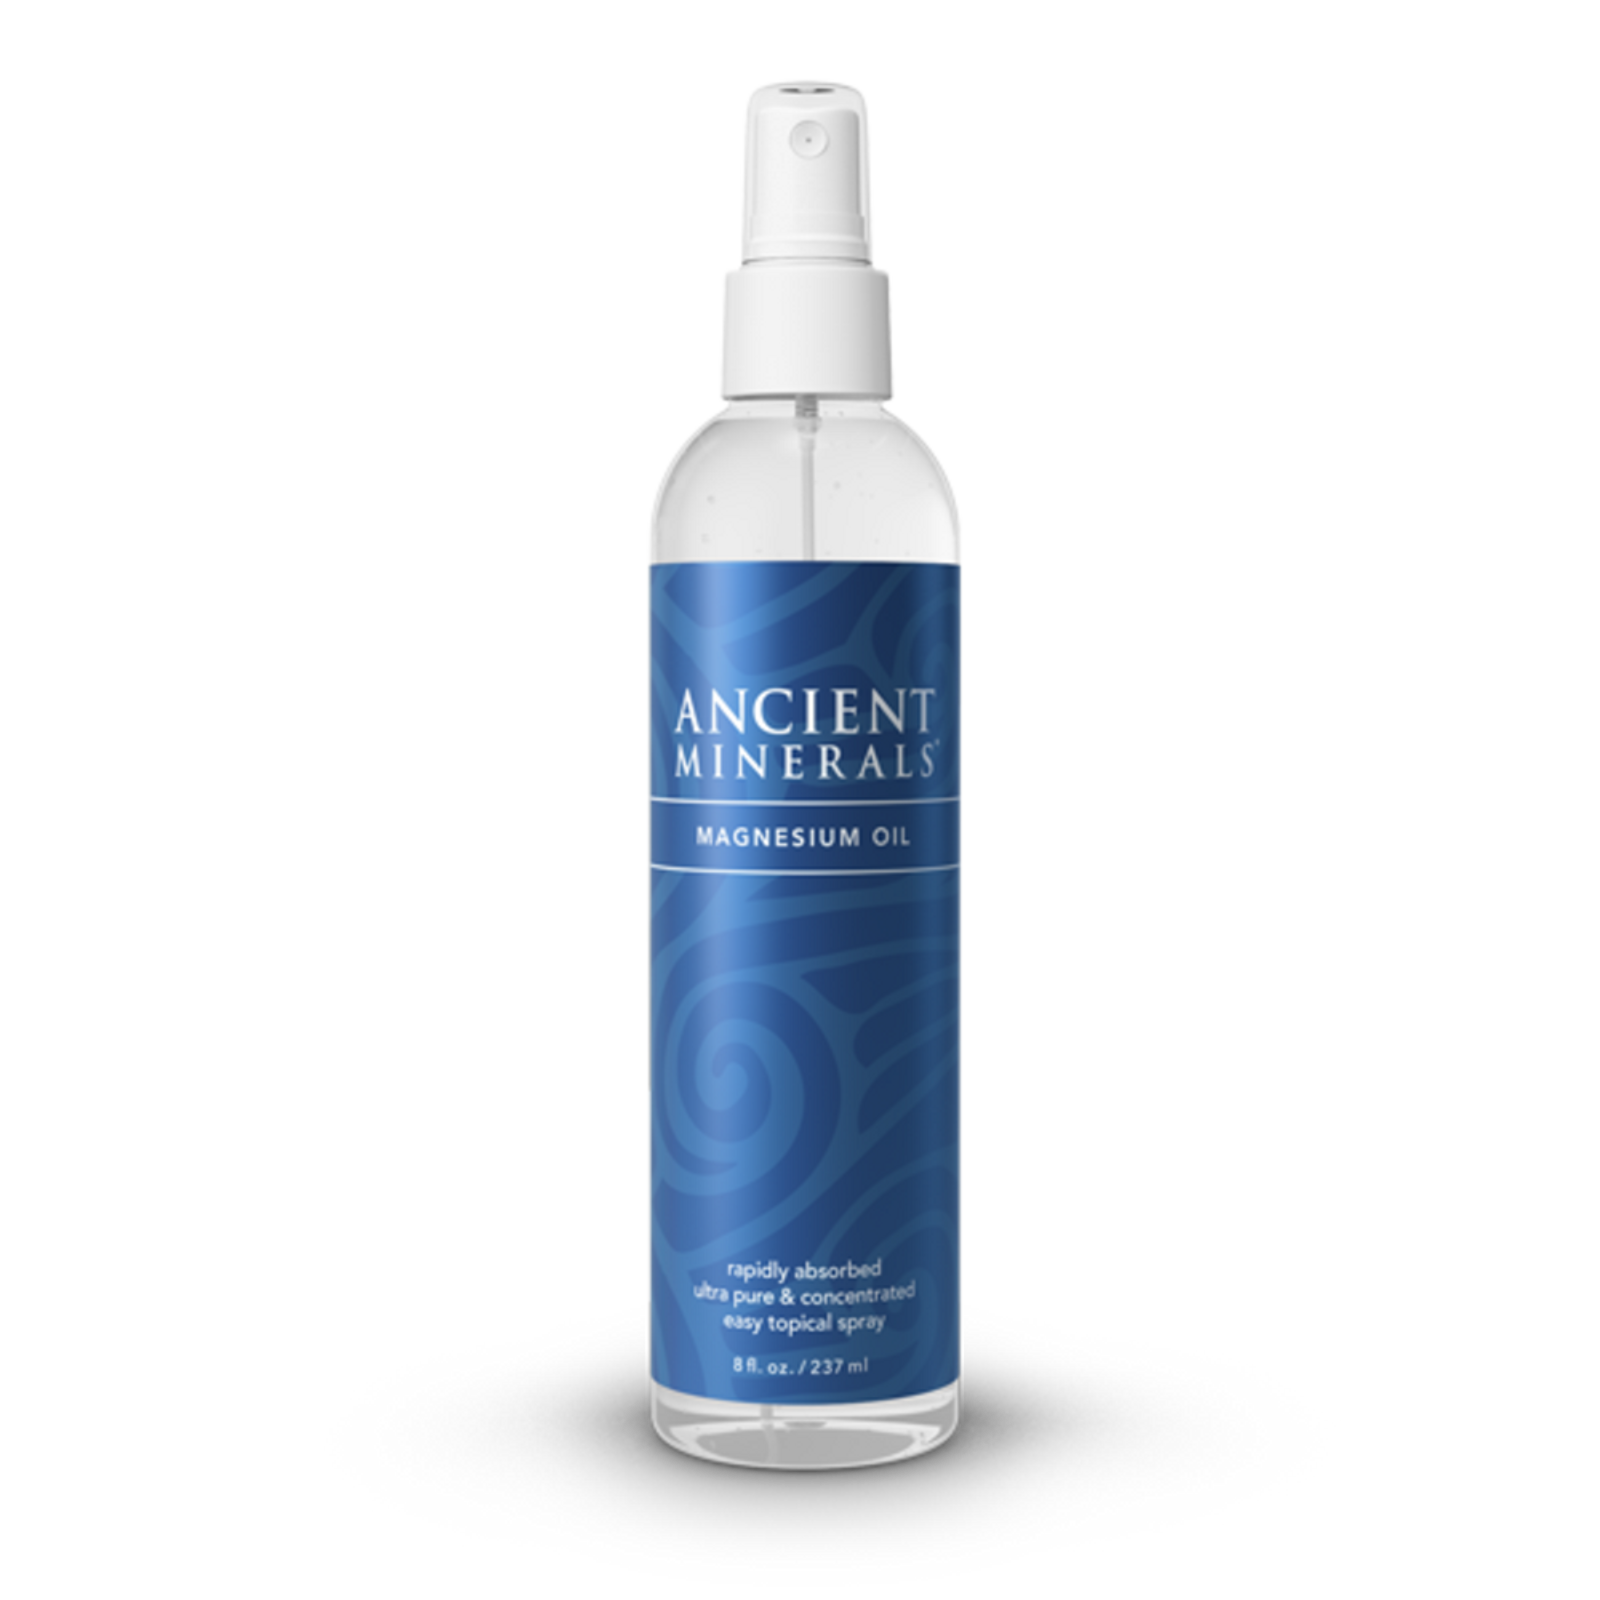 The original magnesium oil, trusted by professionals since 2007. Ancient Minerals magnesium oil by Environmedica contains only the purest ingredients in a convenient topical spray.